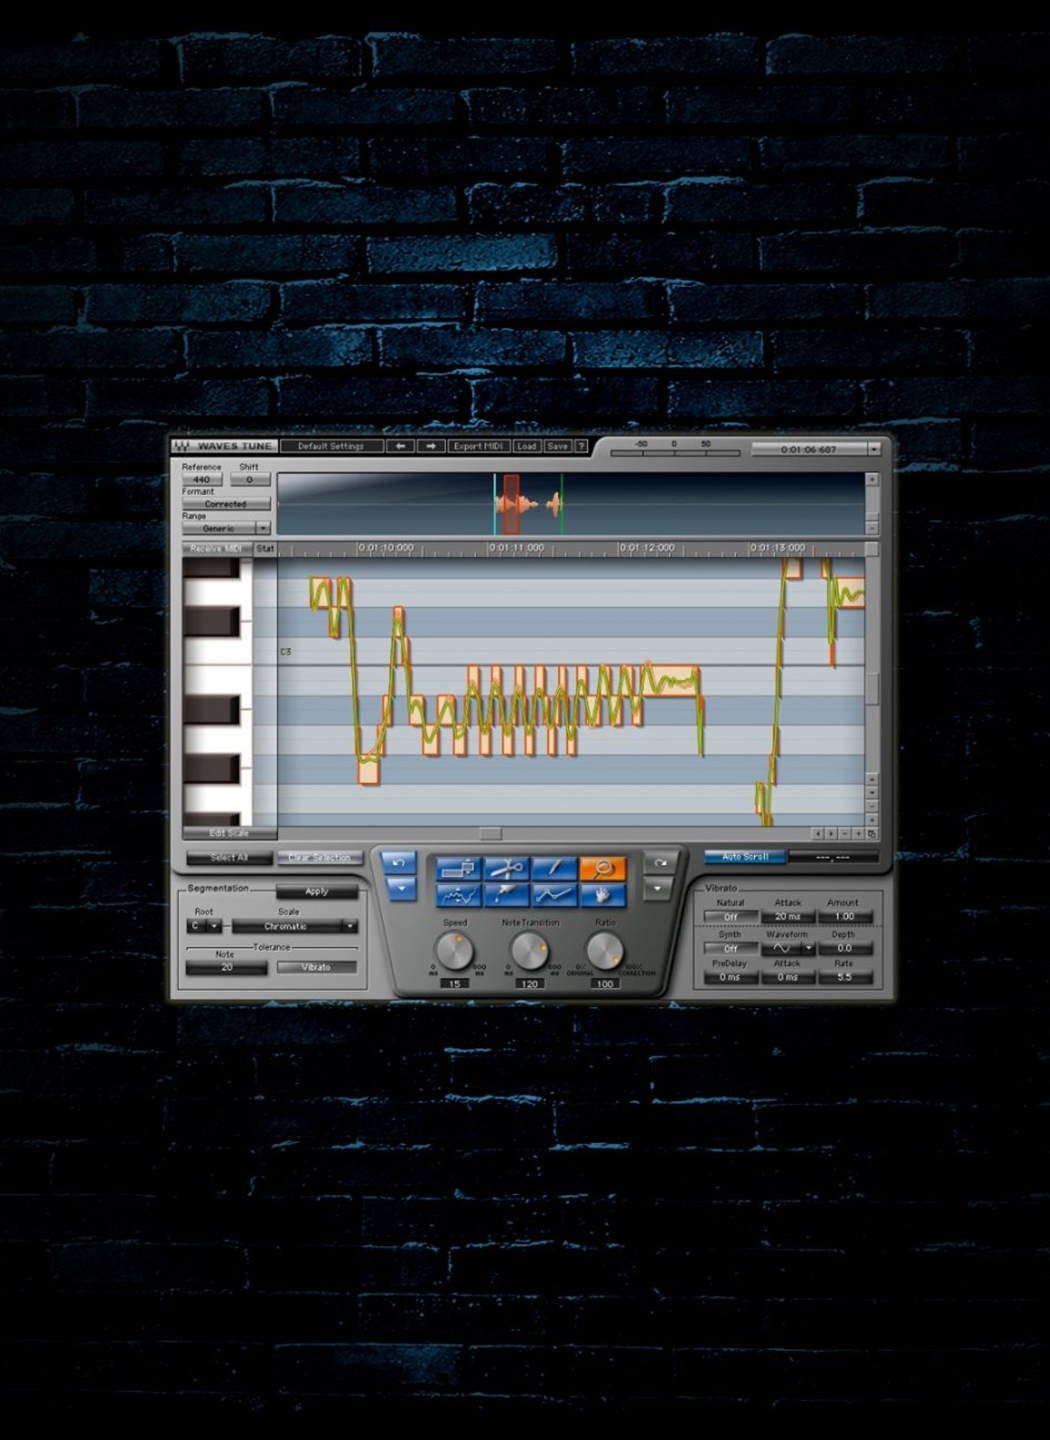 waves tune real time free download crack